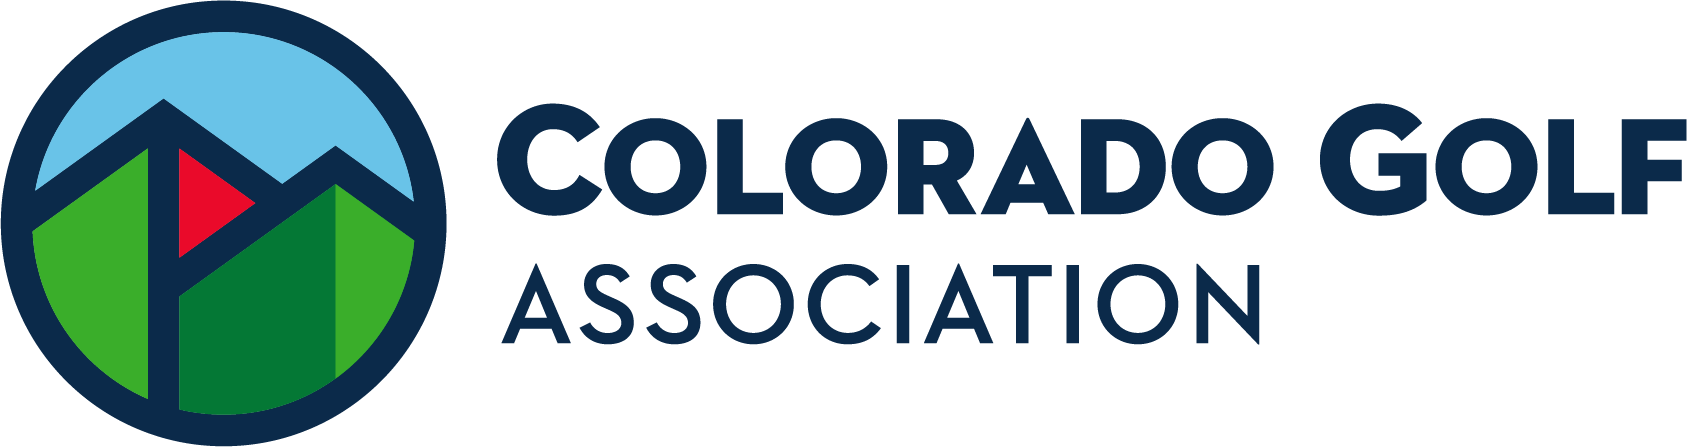 Colorado Golf Association Horizontal Pantone